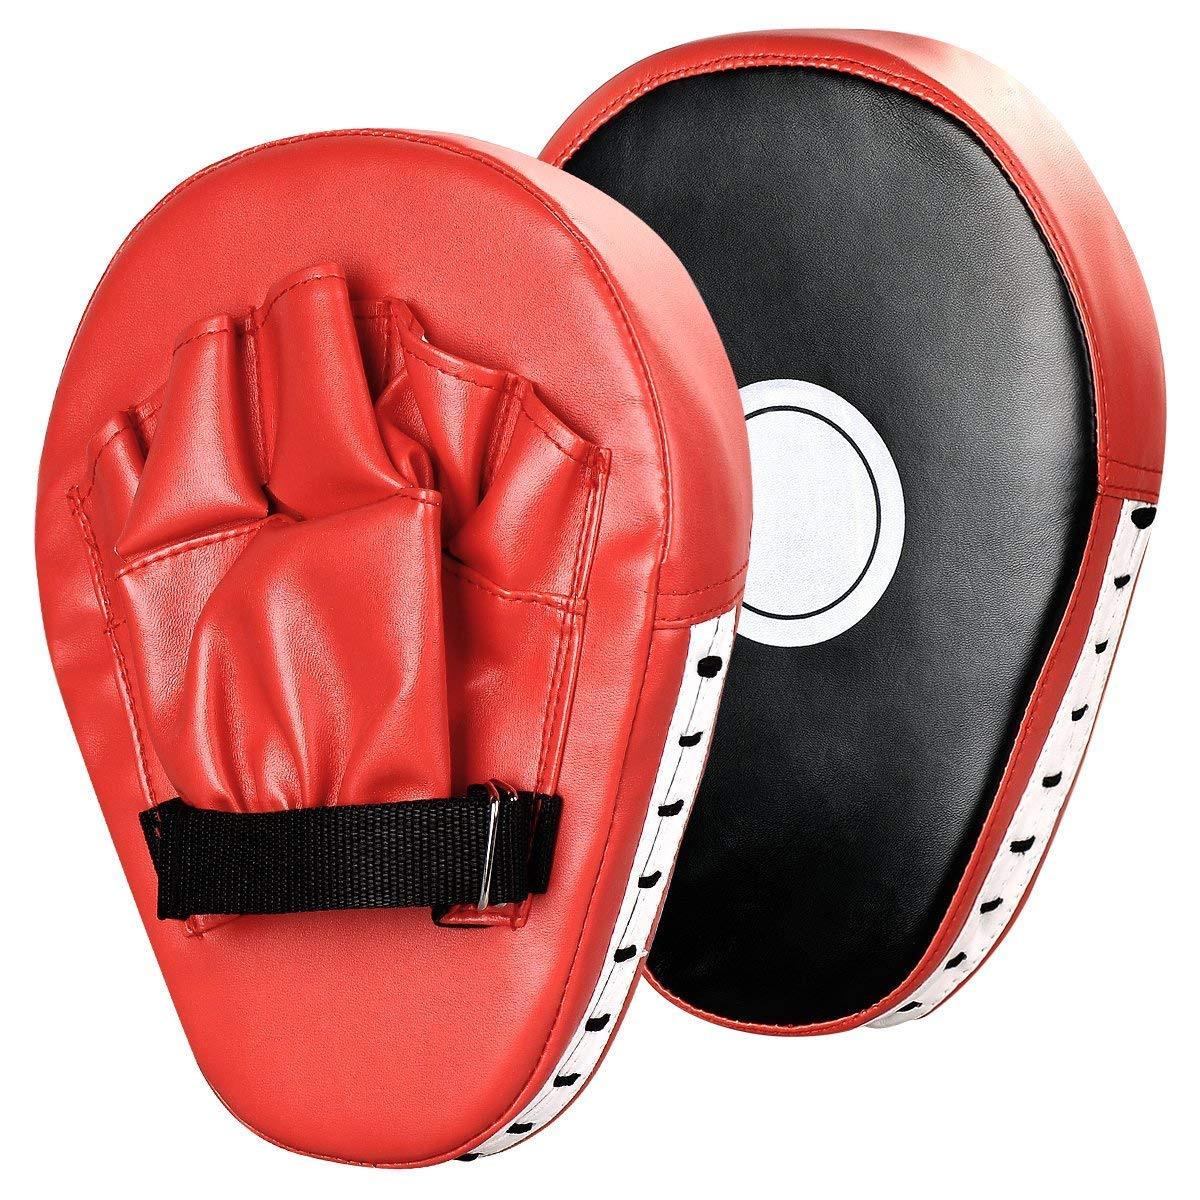 Buy Allamazing Leather Boxing Gloves Mitts Training Target Focus Punch Pads BAG